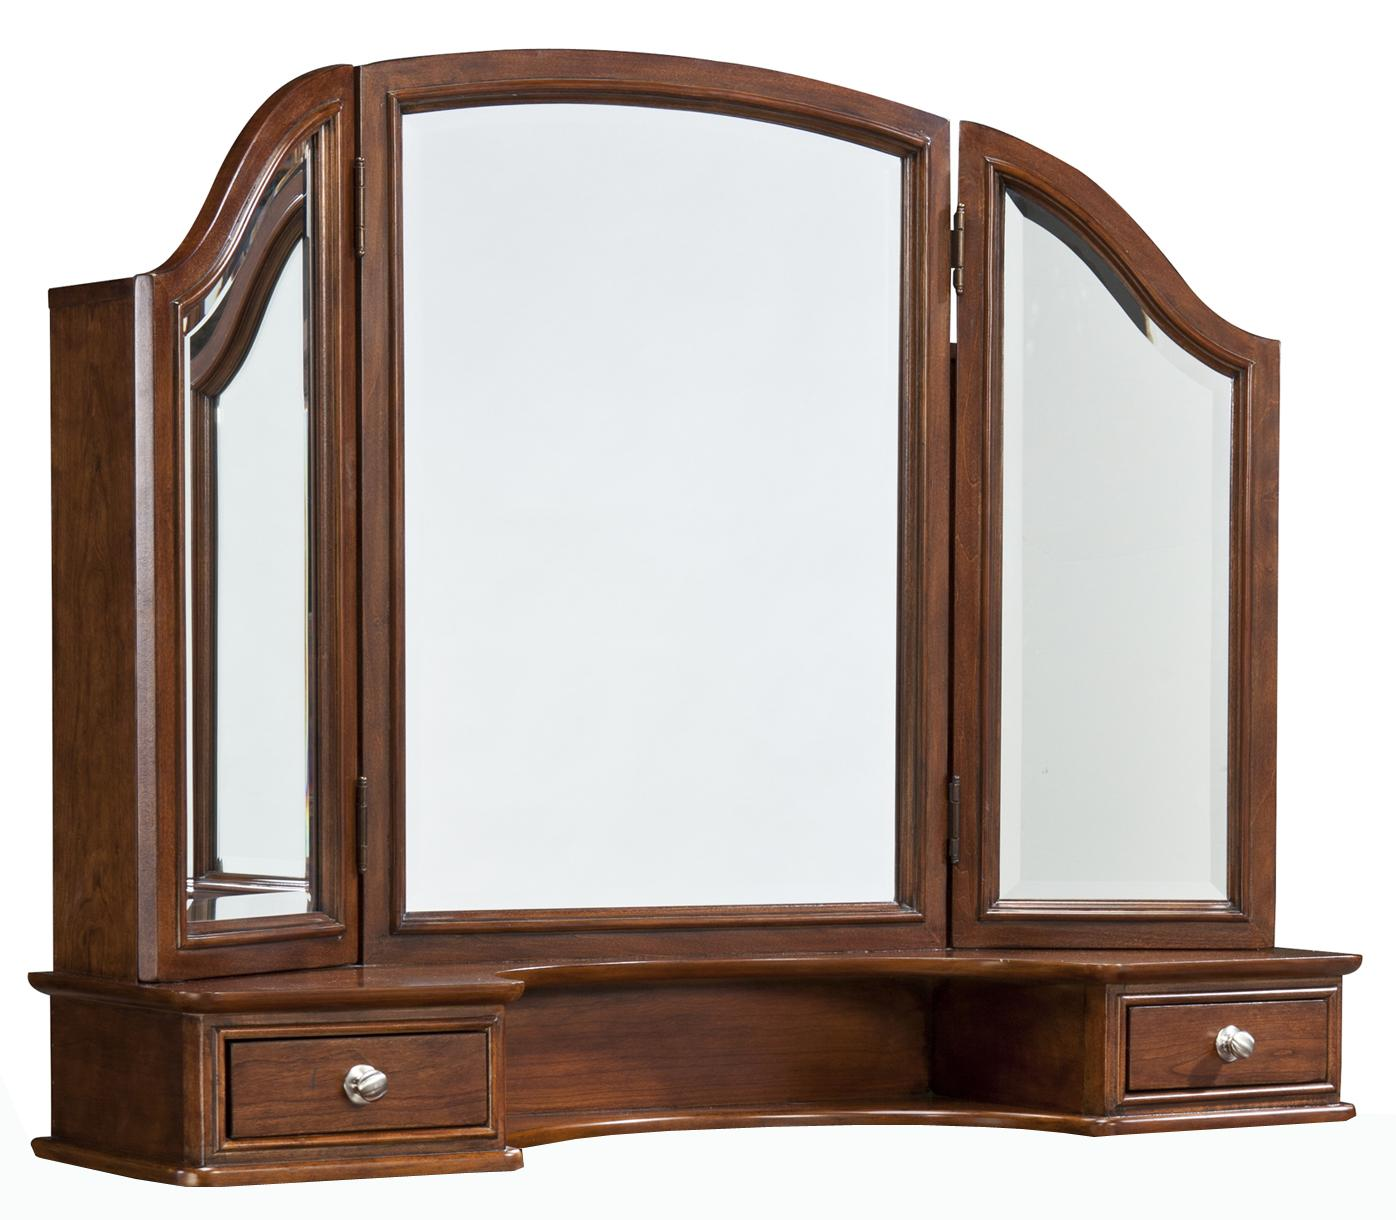 Legacy Classic Kids Impressions Vanity Mirror - Item Number: 2880-6201